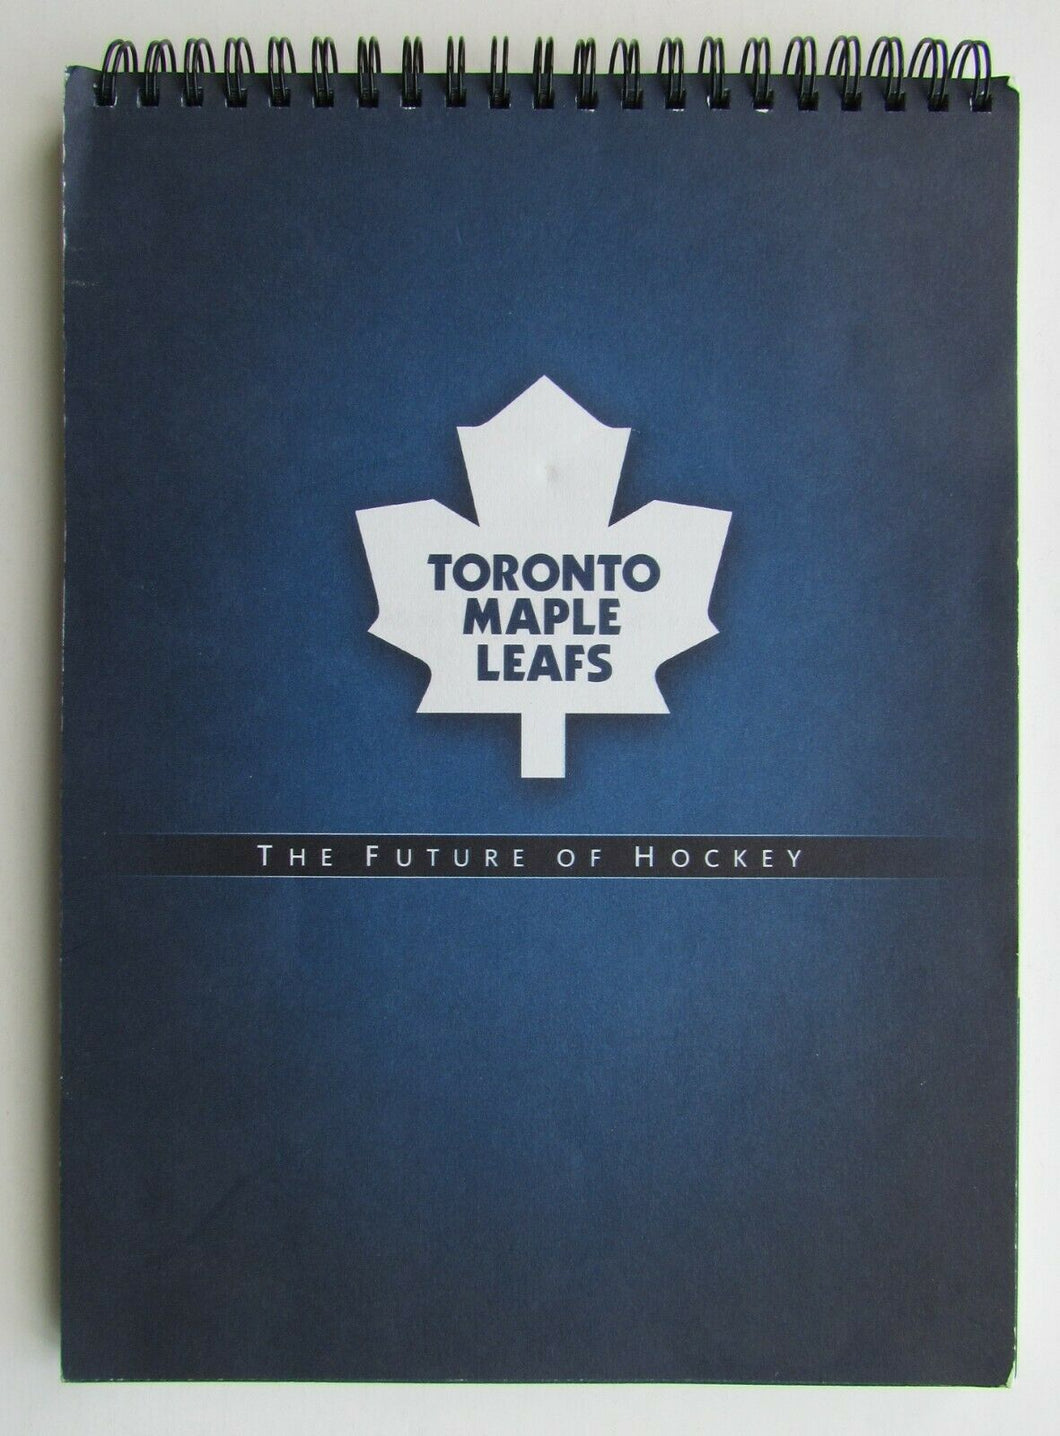 2004-2005 Toronto Maple Leafs Full Season Ticket Book 2 Seats 45 NHL Home Games